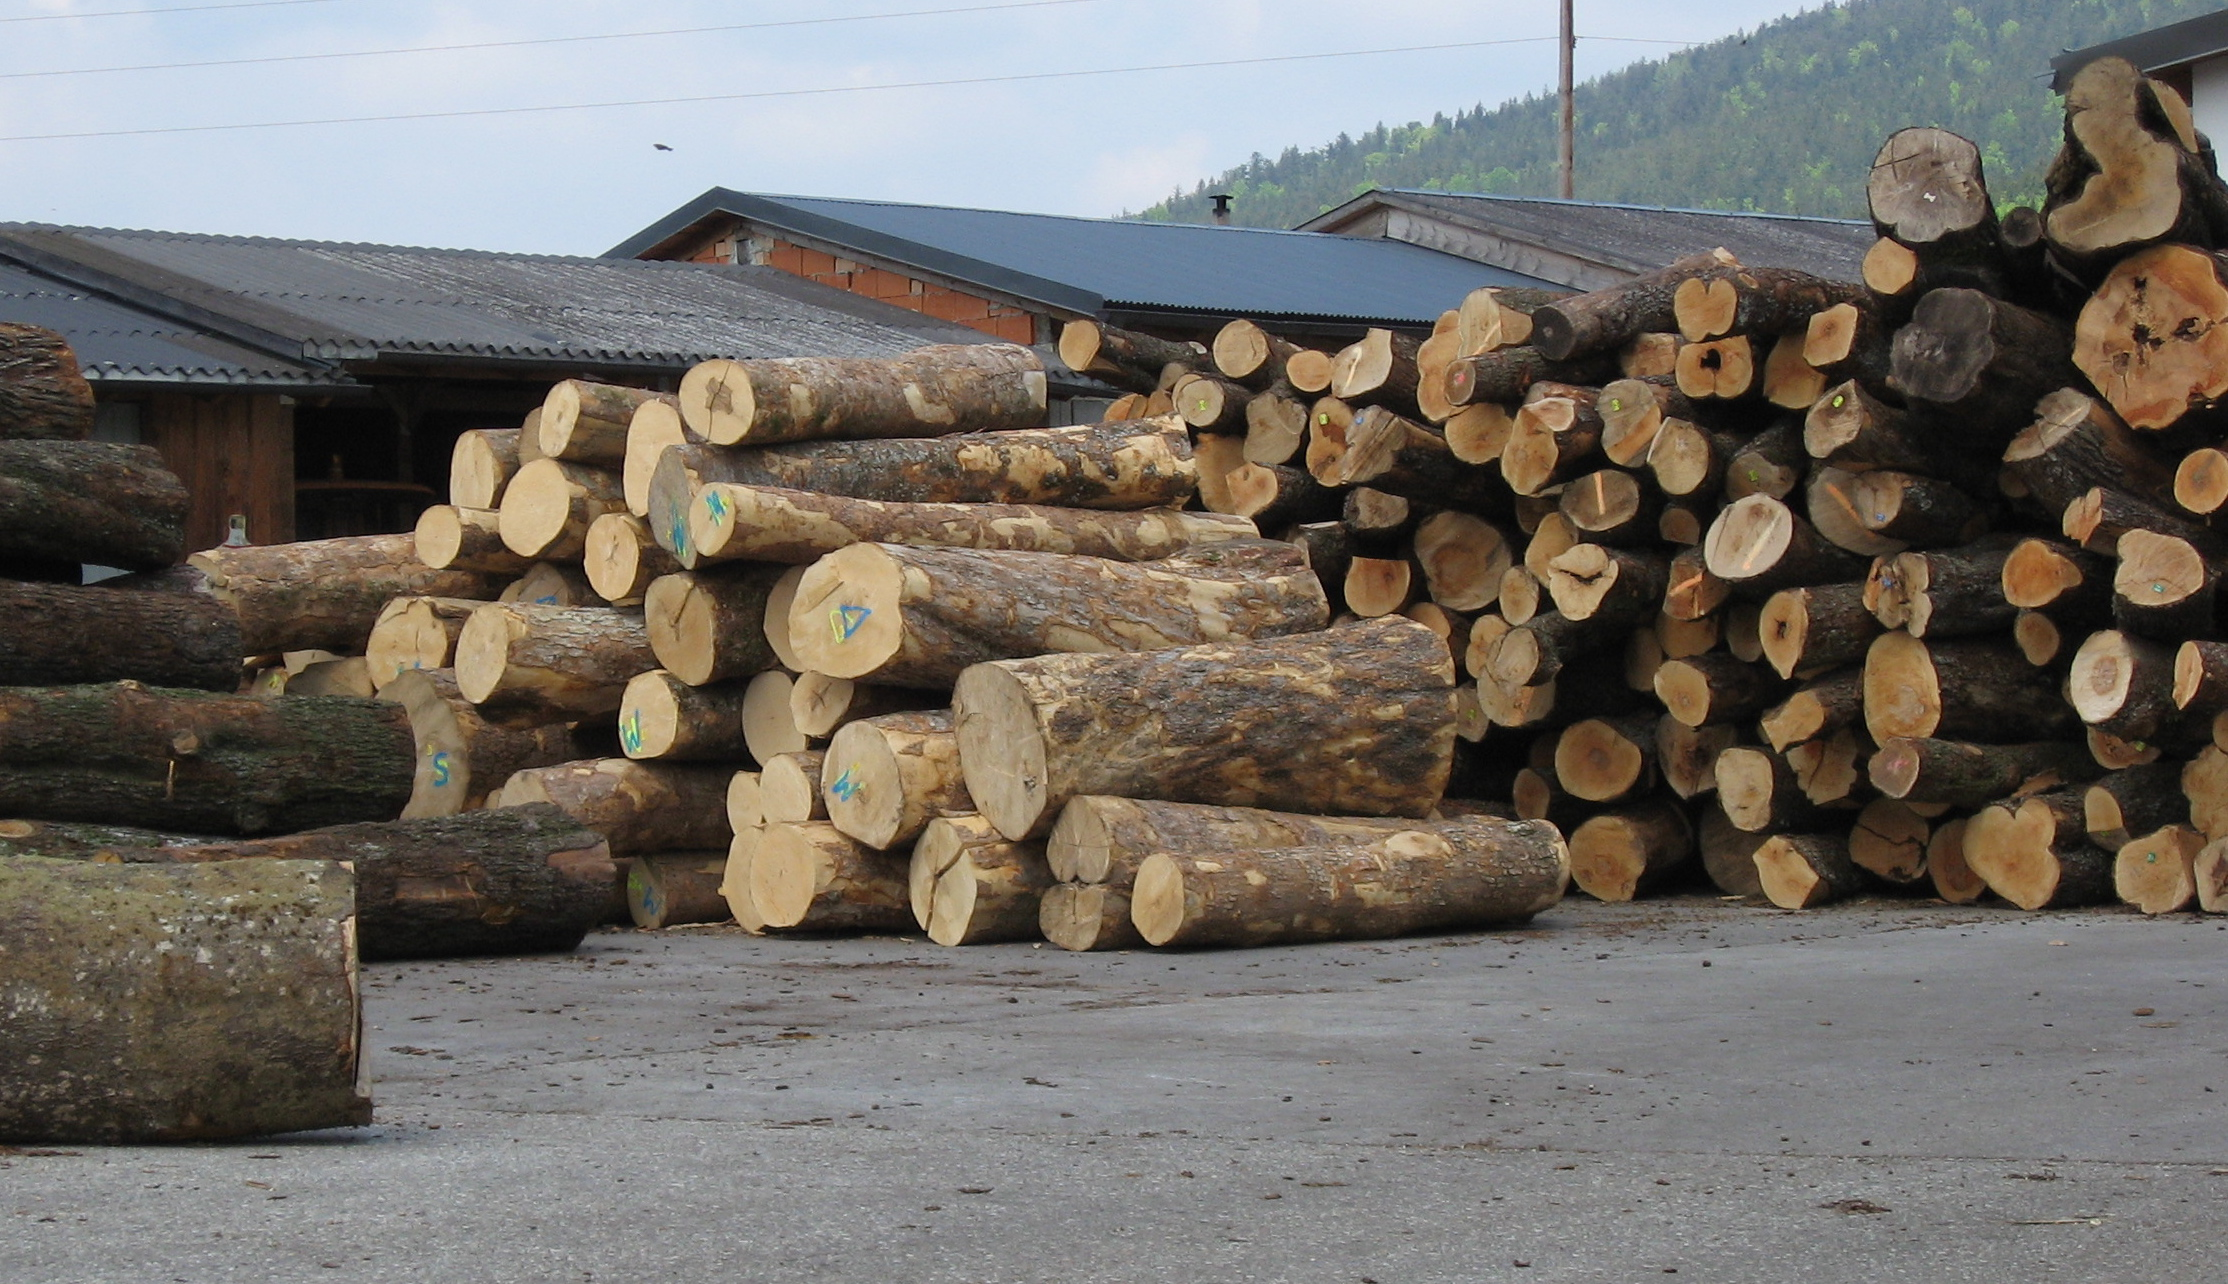 Maple logs ready for the saw mill, Germany